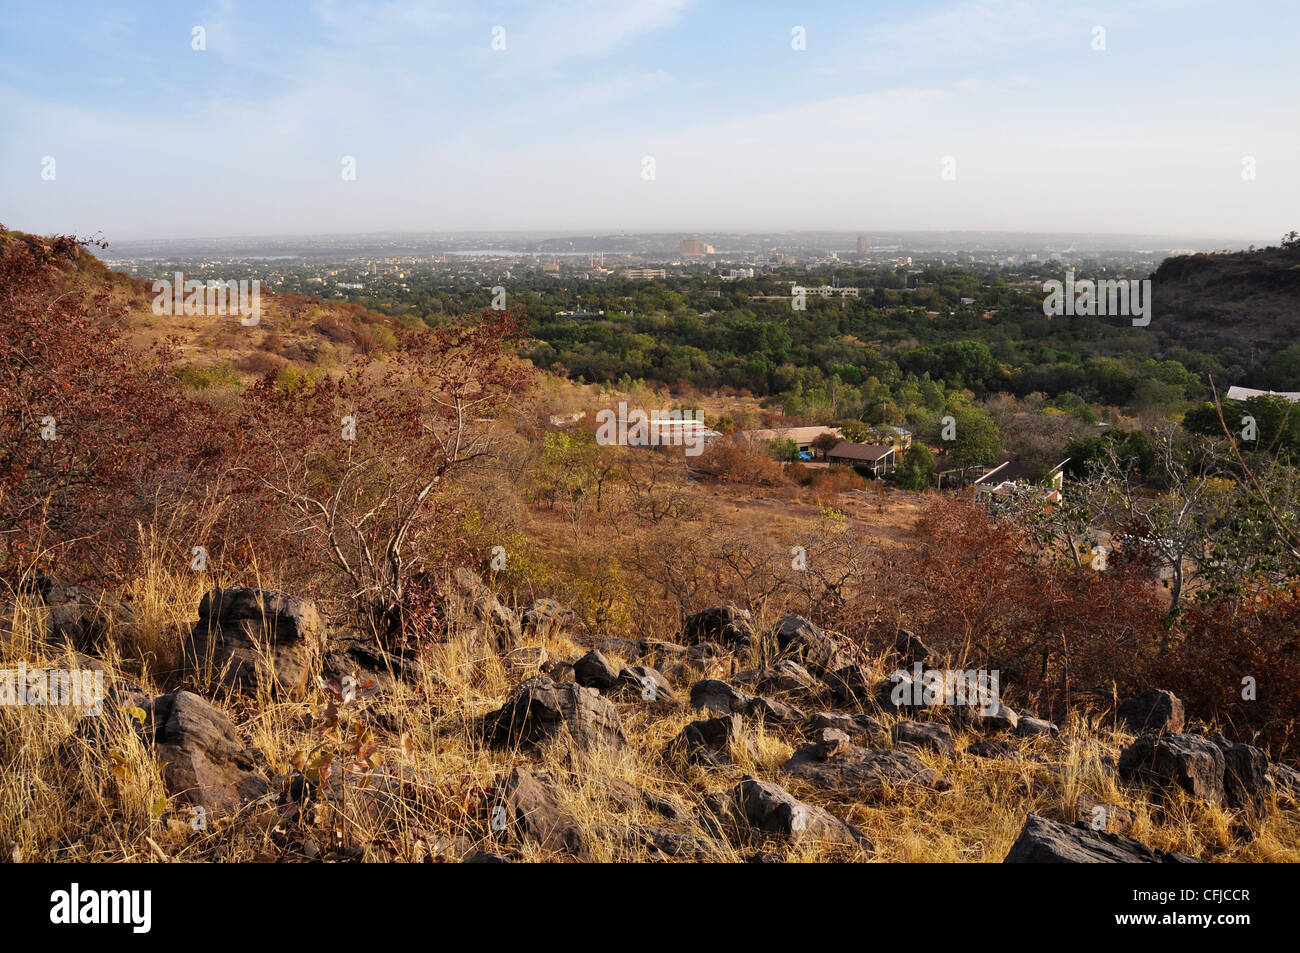 Bamako view from atop a hill, Mali Stock Photo